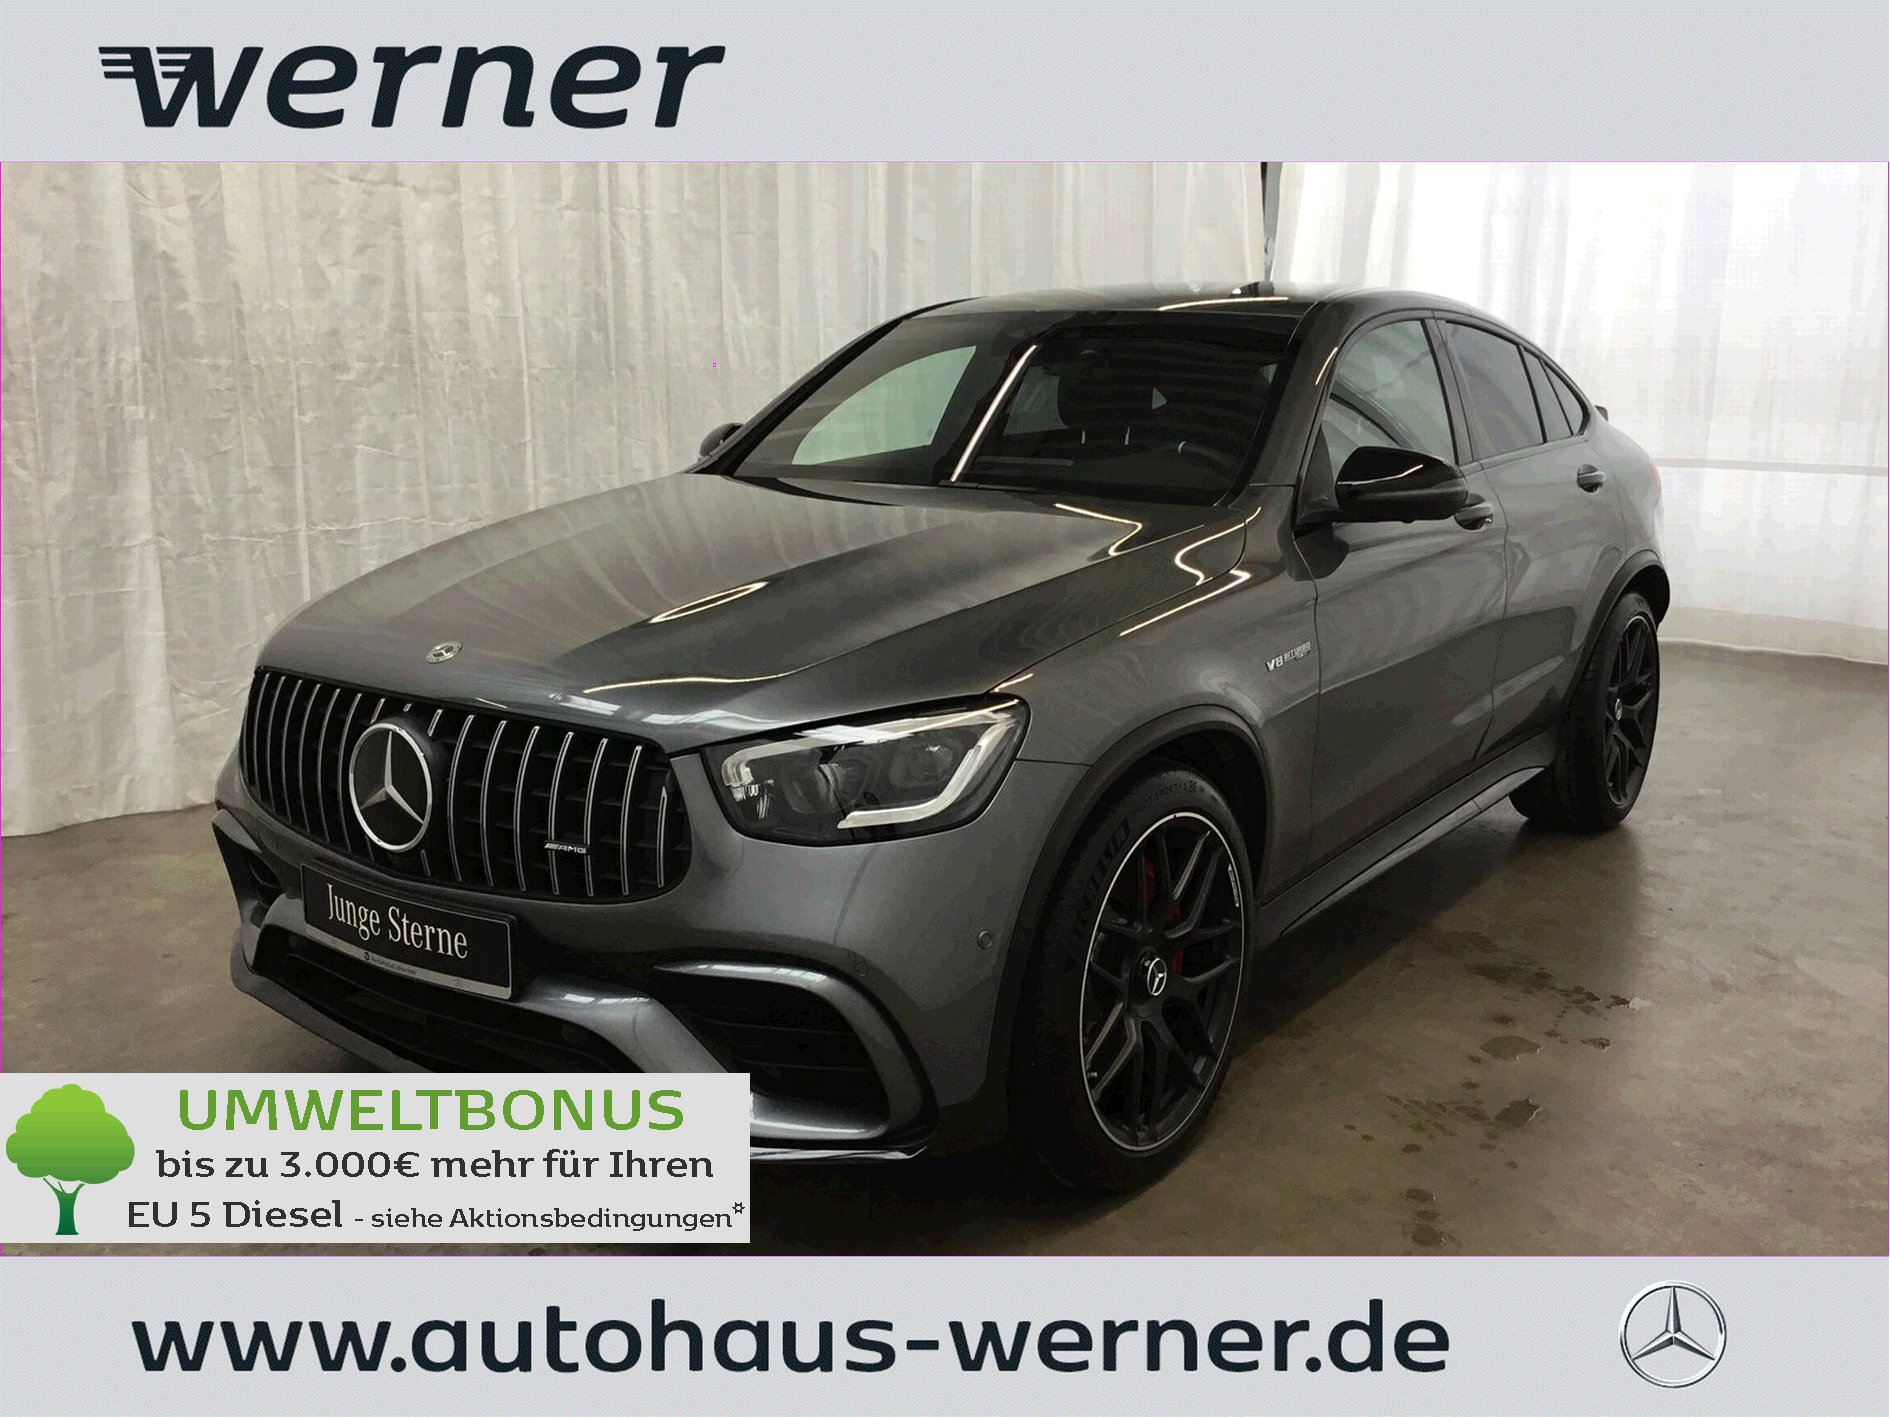 MERCEDES-BENZ Mercedes-AMG GLC 63 S 4M+ Coupe